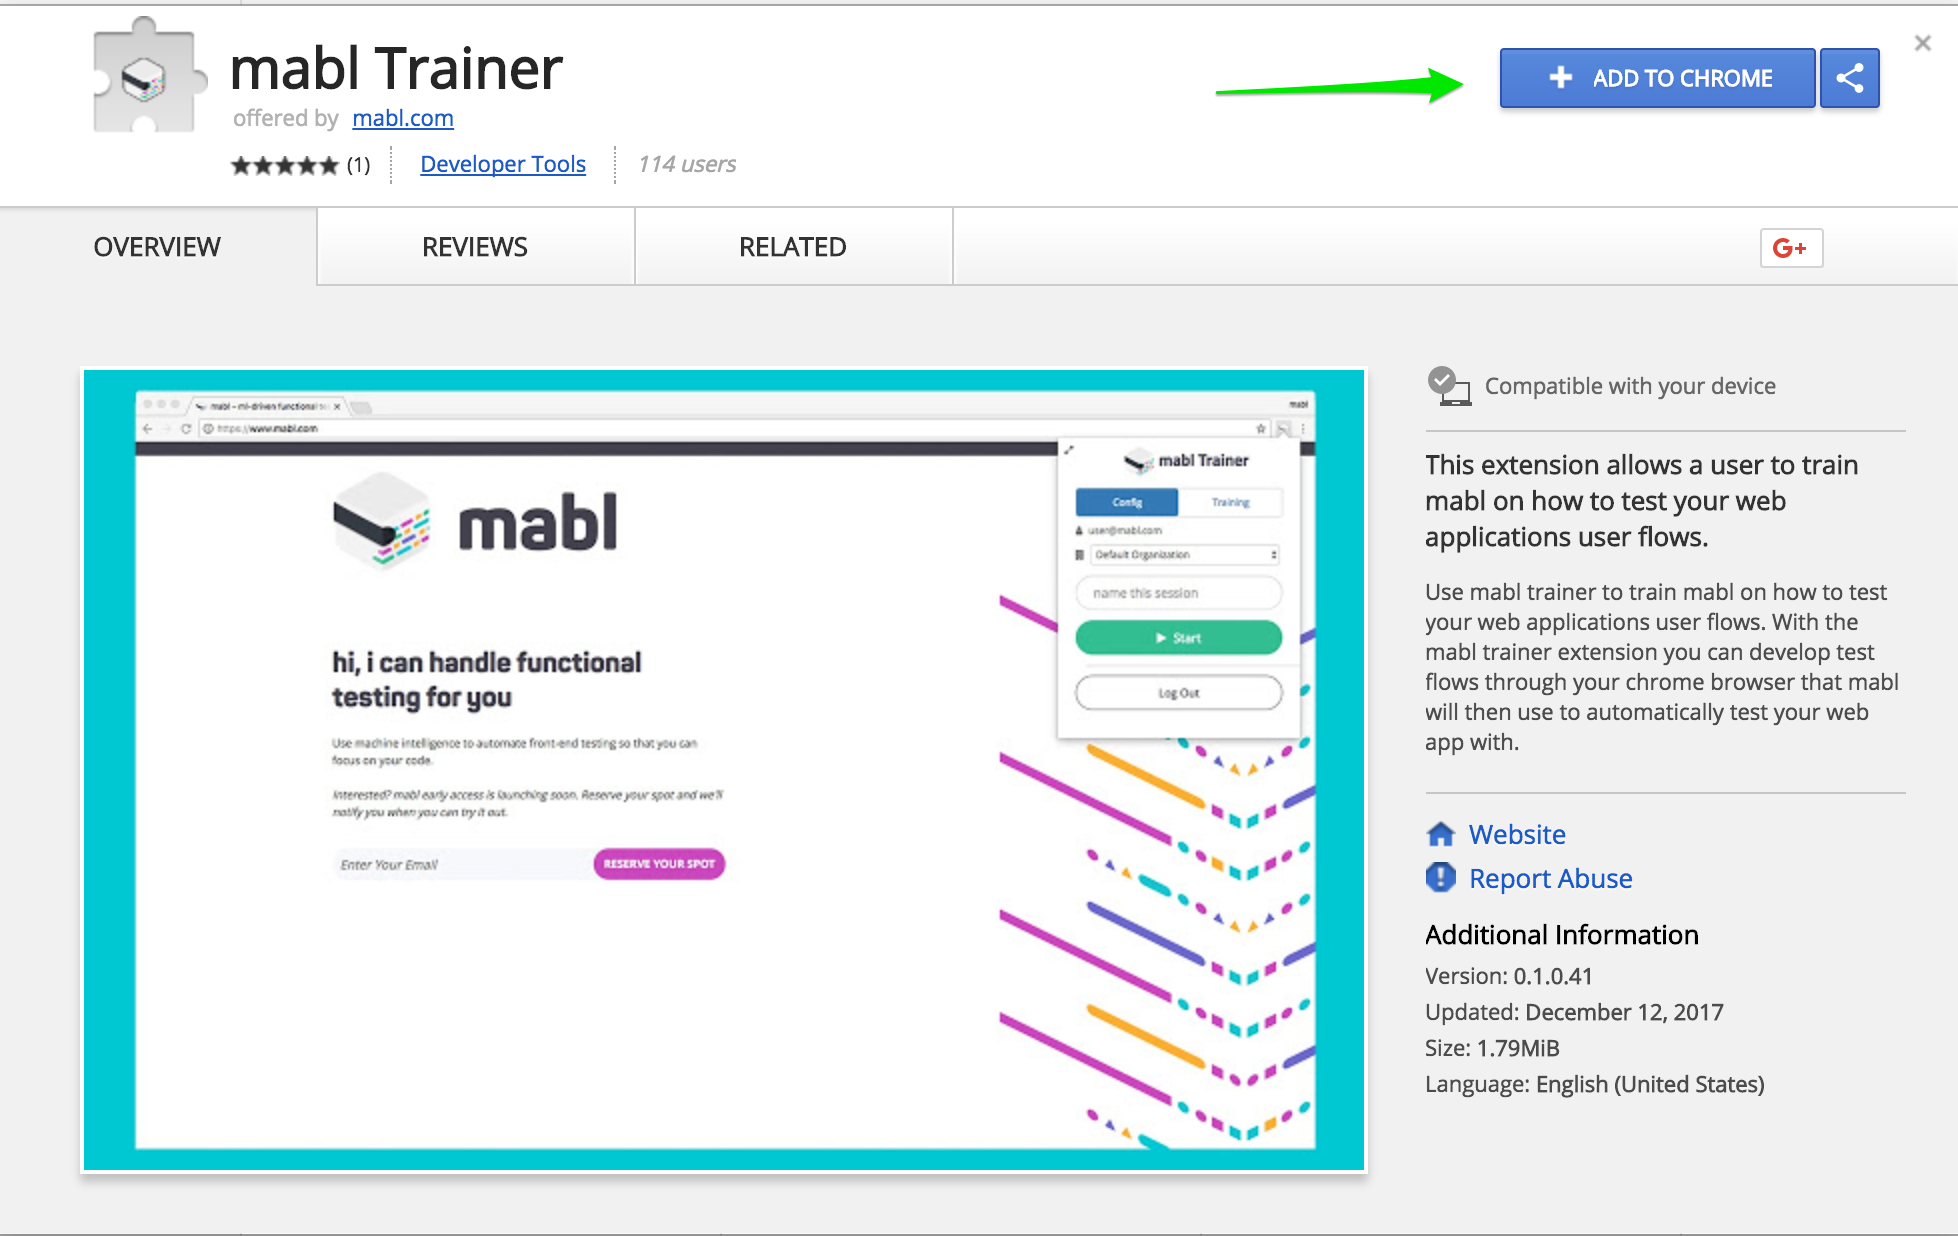 mabl Trainer in the Chrome web store.